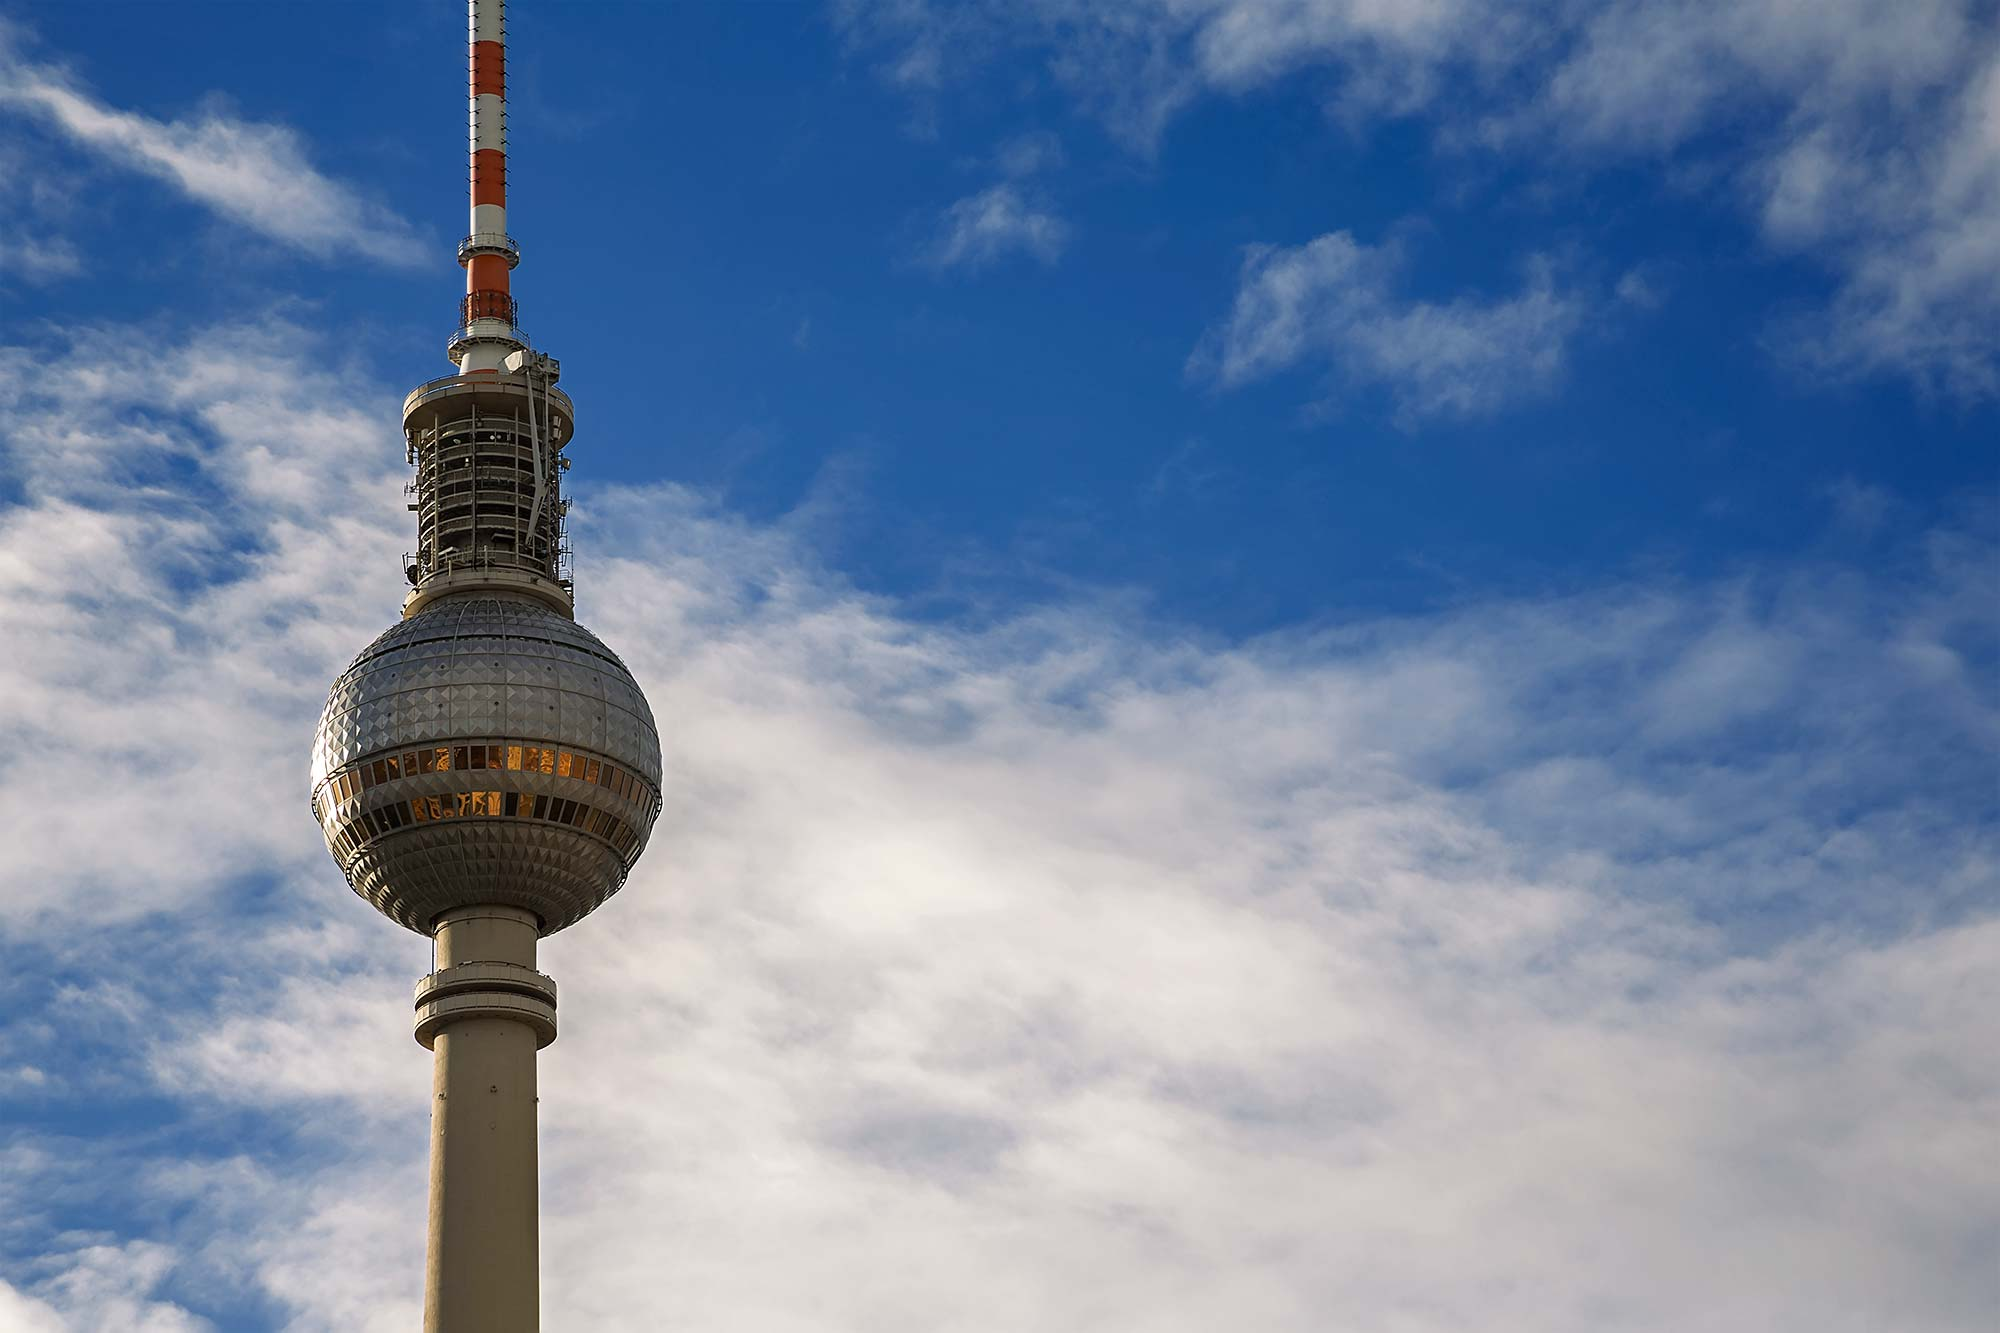 The TV Tower at Alexanderplatz in Berlin. © Ulli Maier & Nisa Maier